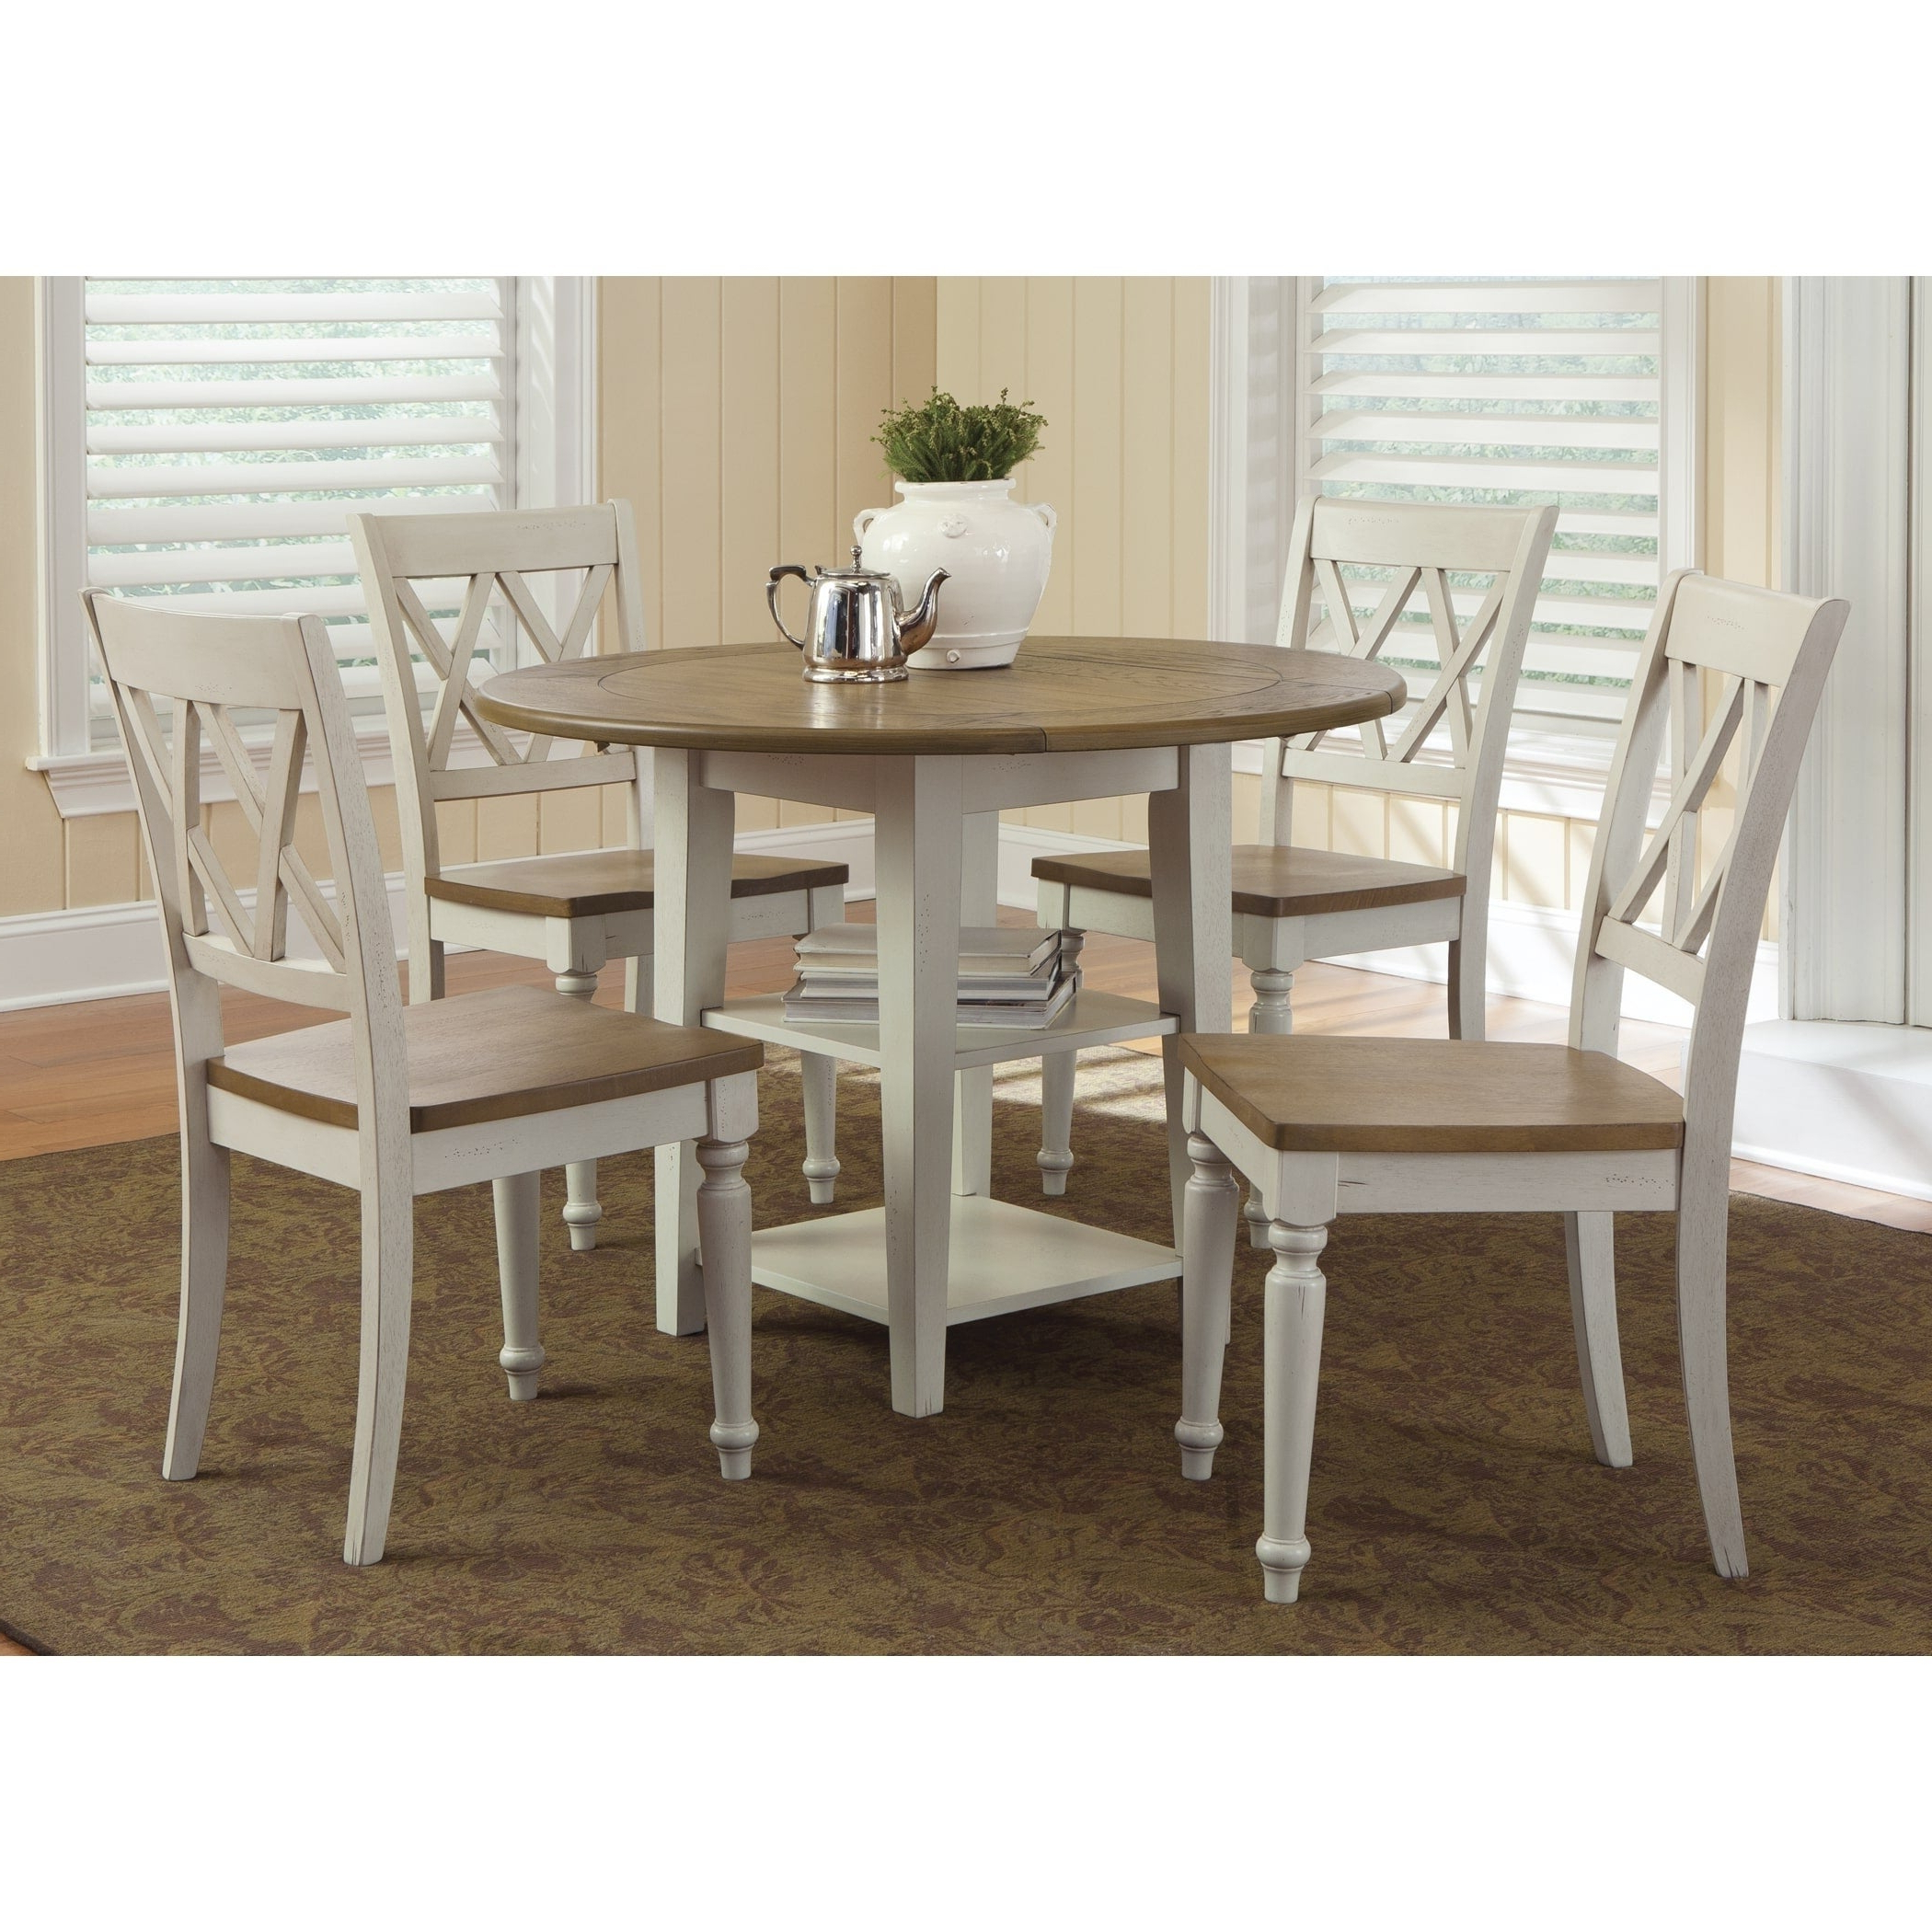 Transitional 4 Seating Drop Leaf Casual Dining Tables For Well Known Al Fresco Two Tone Transitional Drop Leaf Leg Table – Antique White (View 16 of 25)